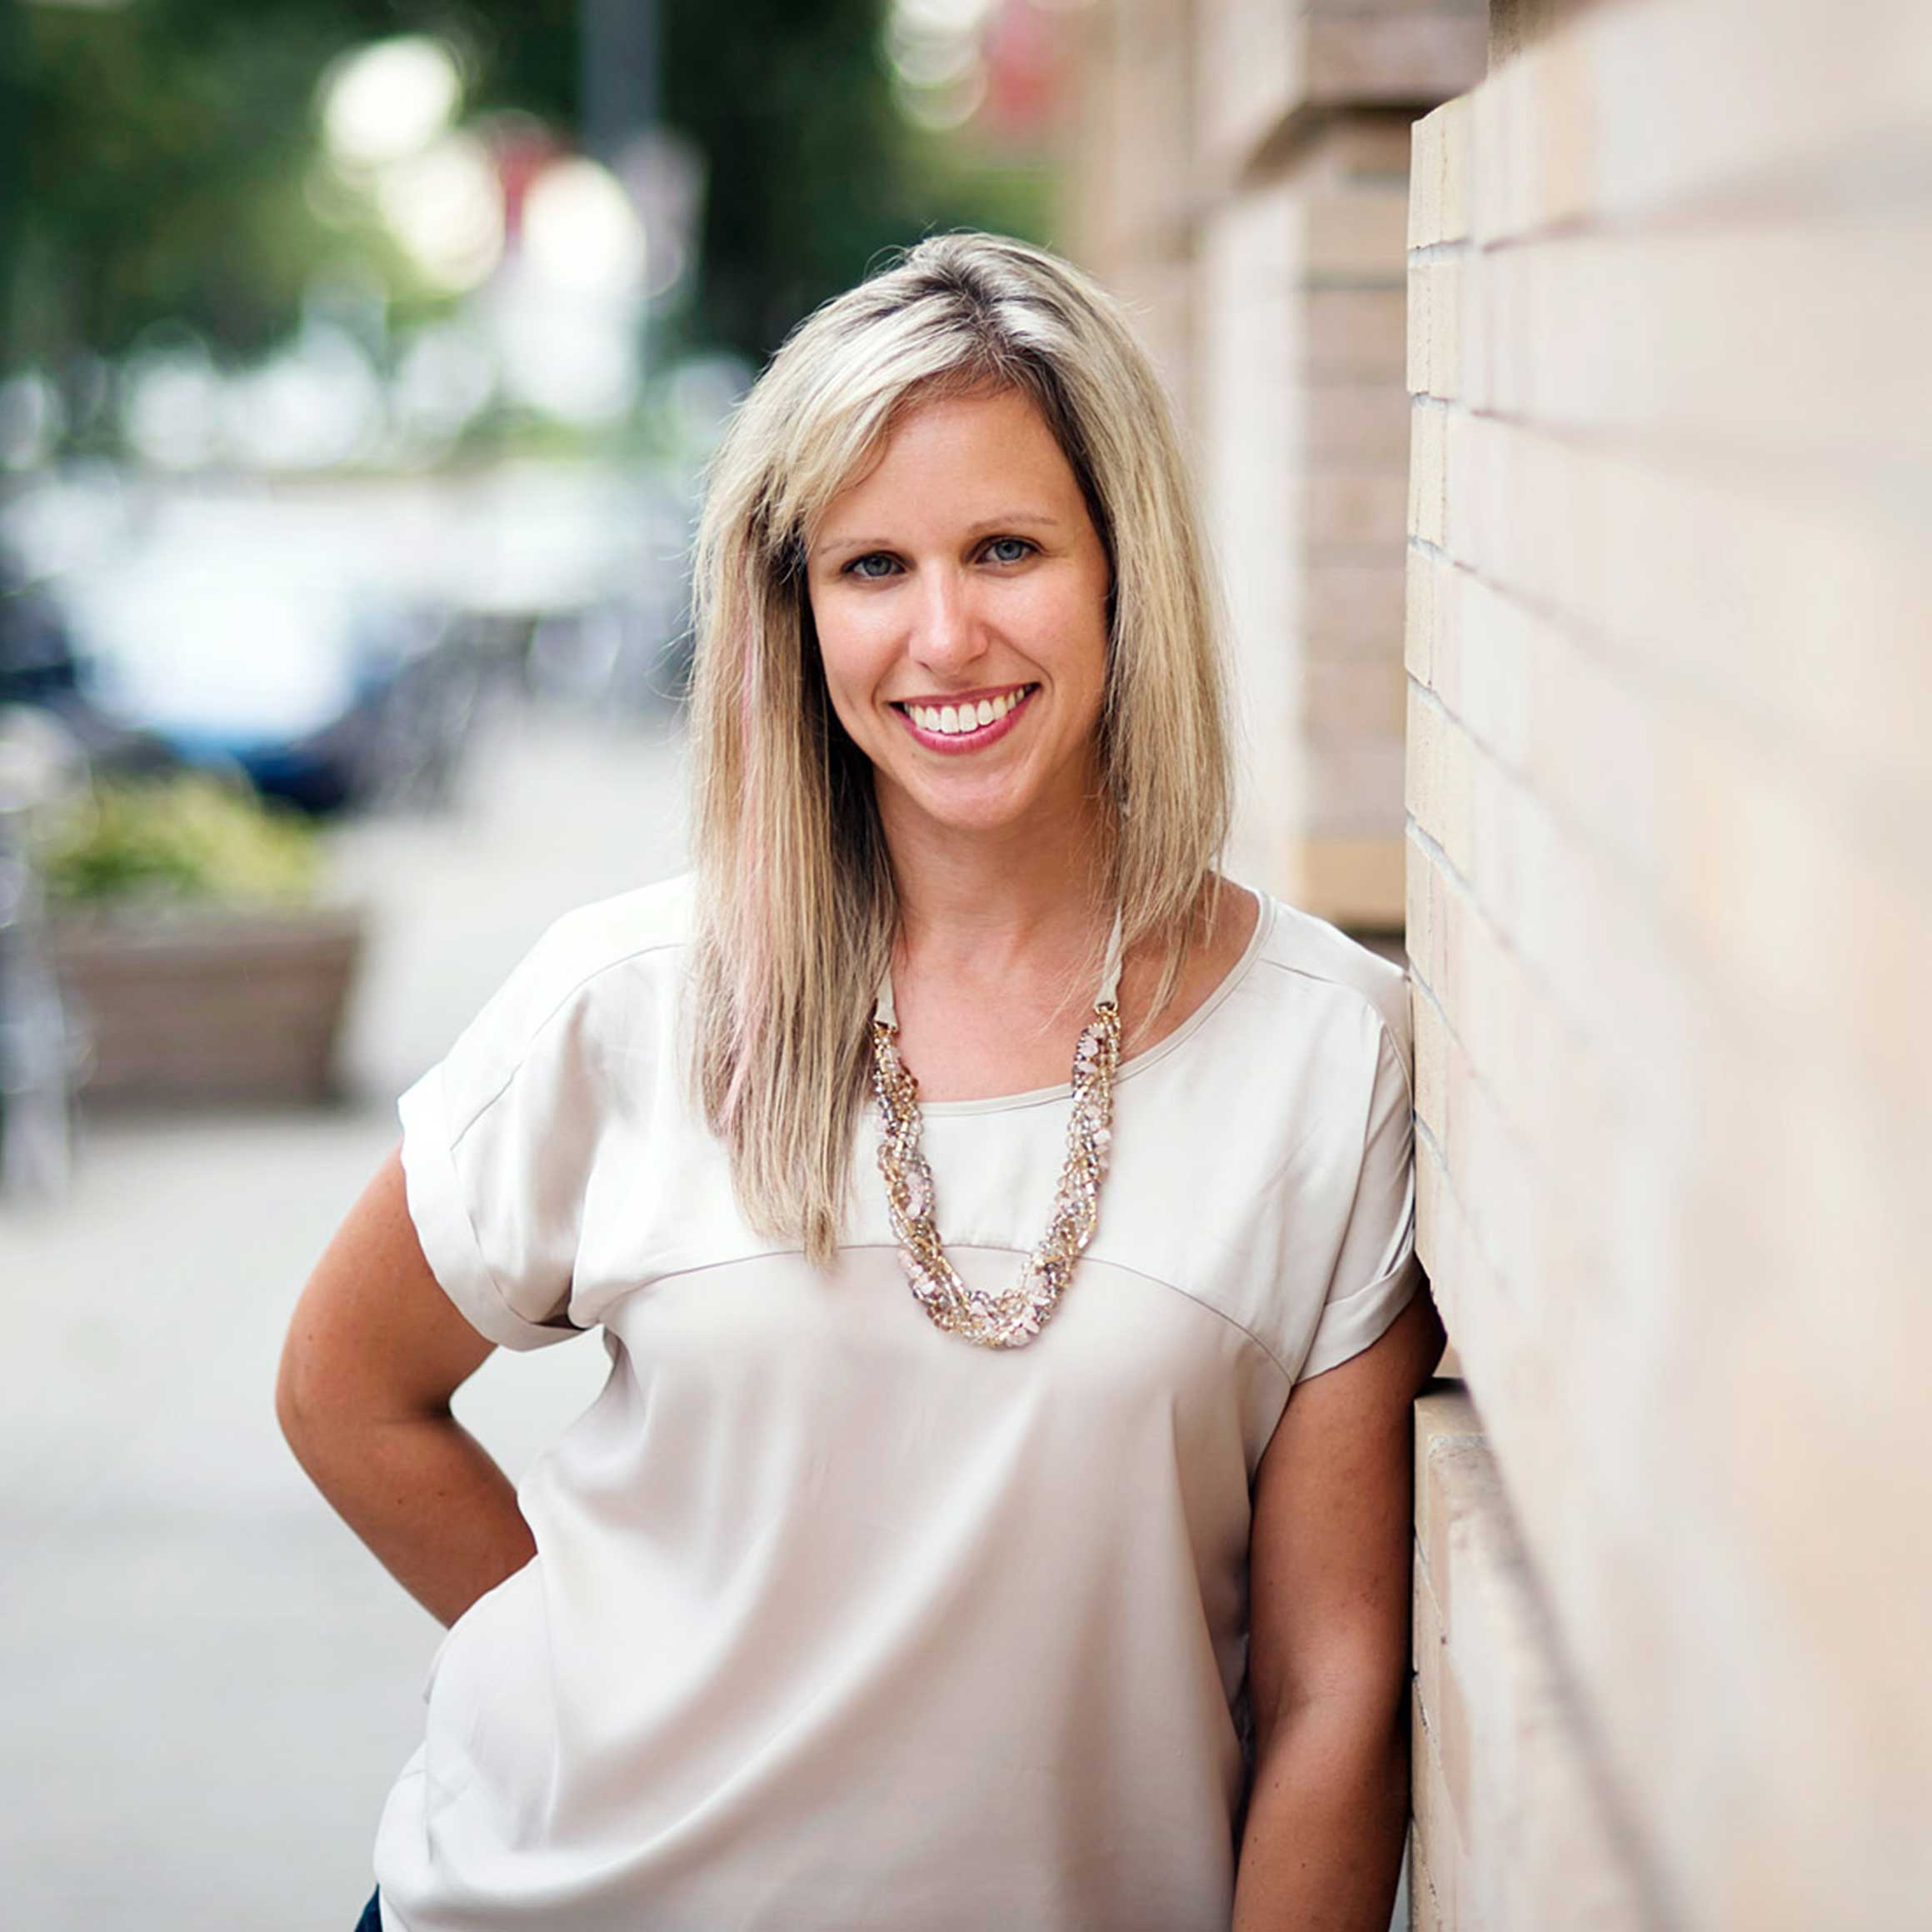 LINDSAY FEELEY   Lindsay has been planning events for 13+ years and is always looking for a new challenge. Her technology background, love of social media and DIY skills can help to customize any event.